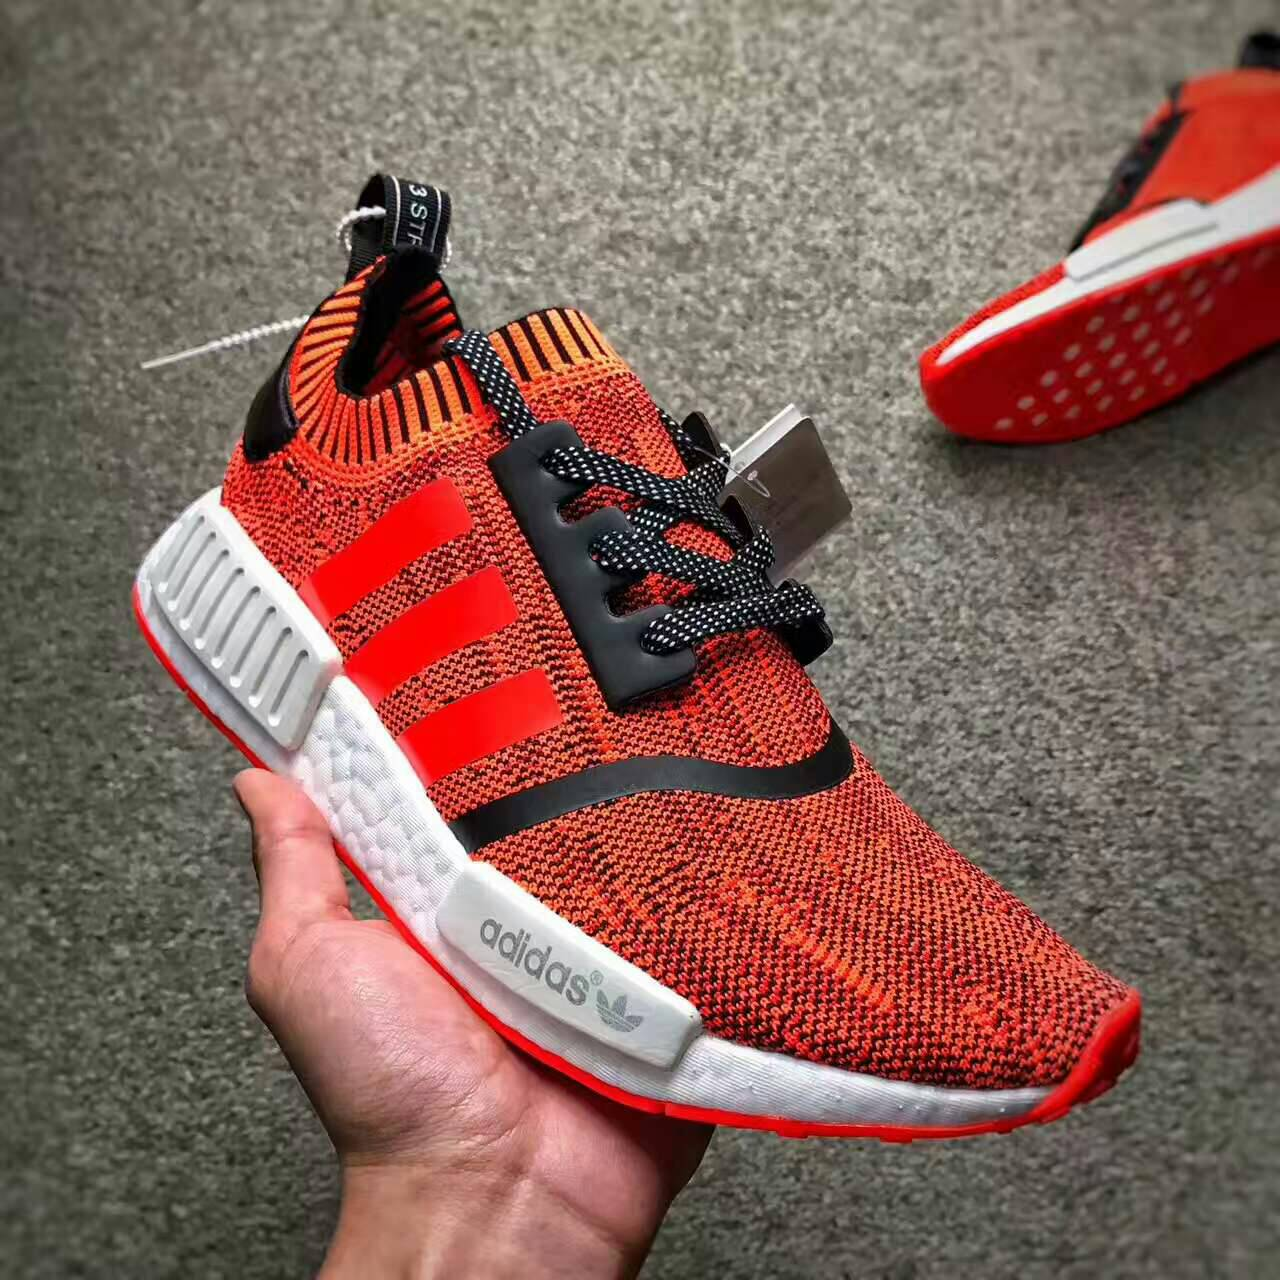 new concept ff437 88d53 Adidas NMD R1 NYC RED APPLE 紐約限定 情侶款